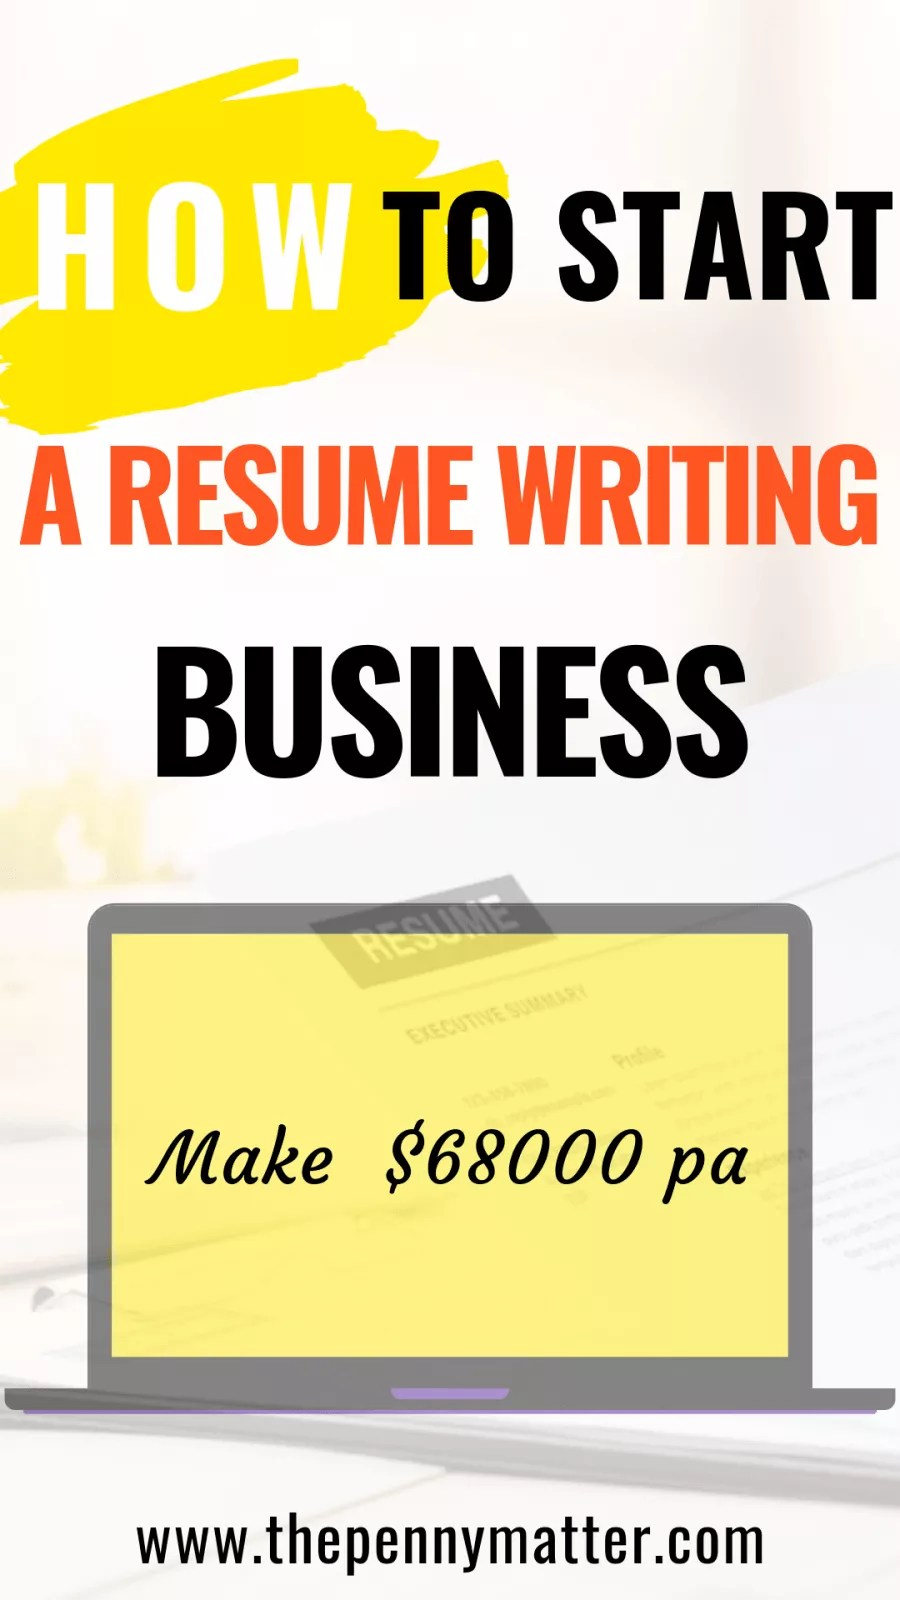 How To Start A Resume Writing Business Services Penny